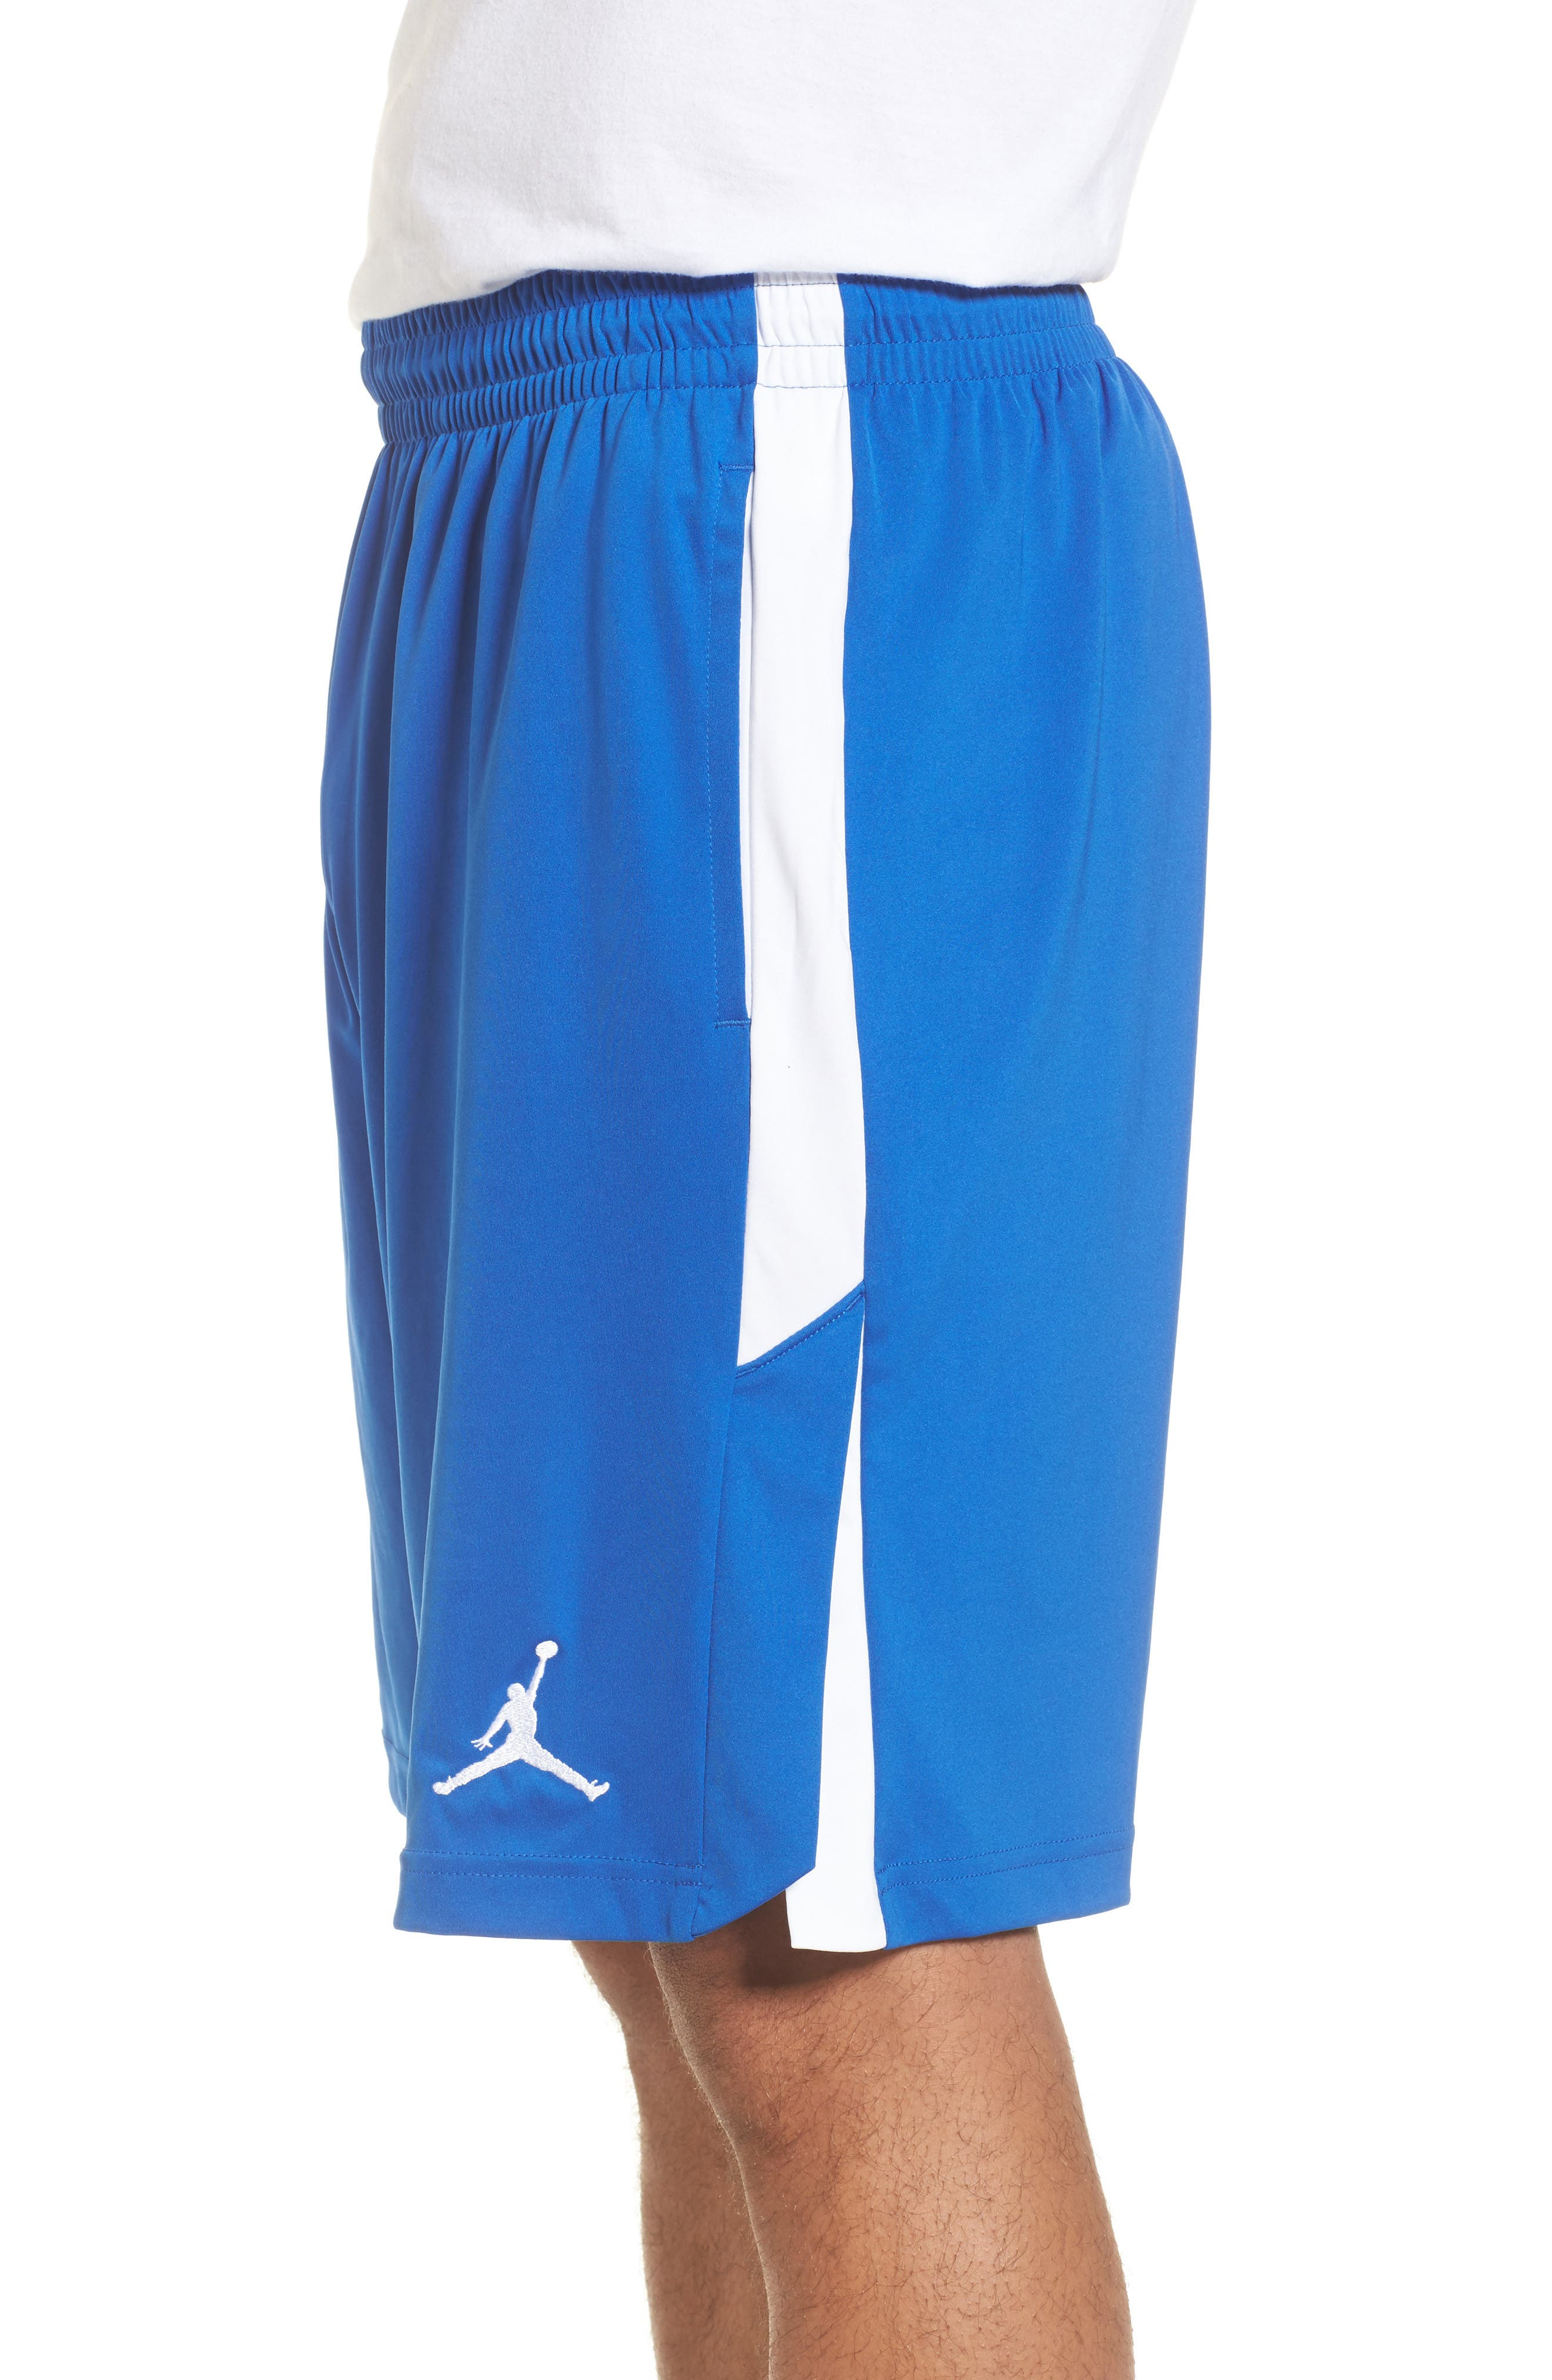 23 Alpha Dry Knit Shorts,                             Alternate thumbnail 3, color,                             Game Royal/ White